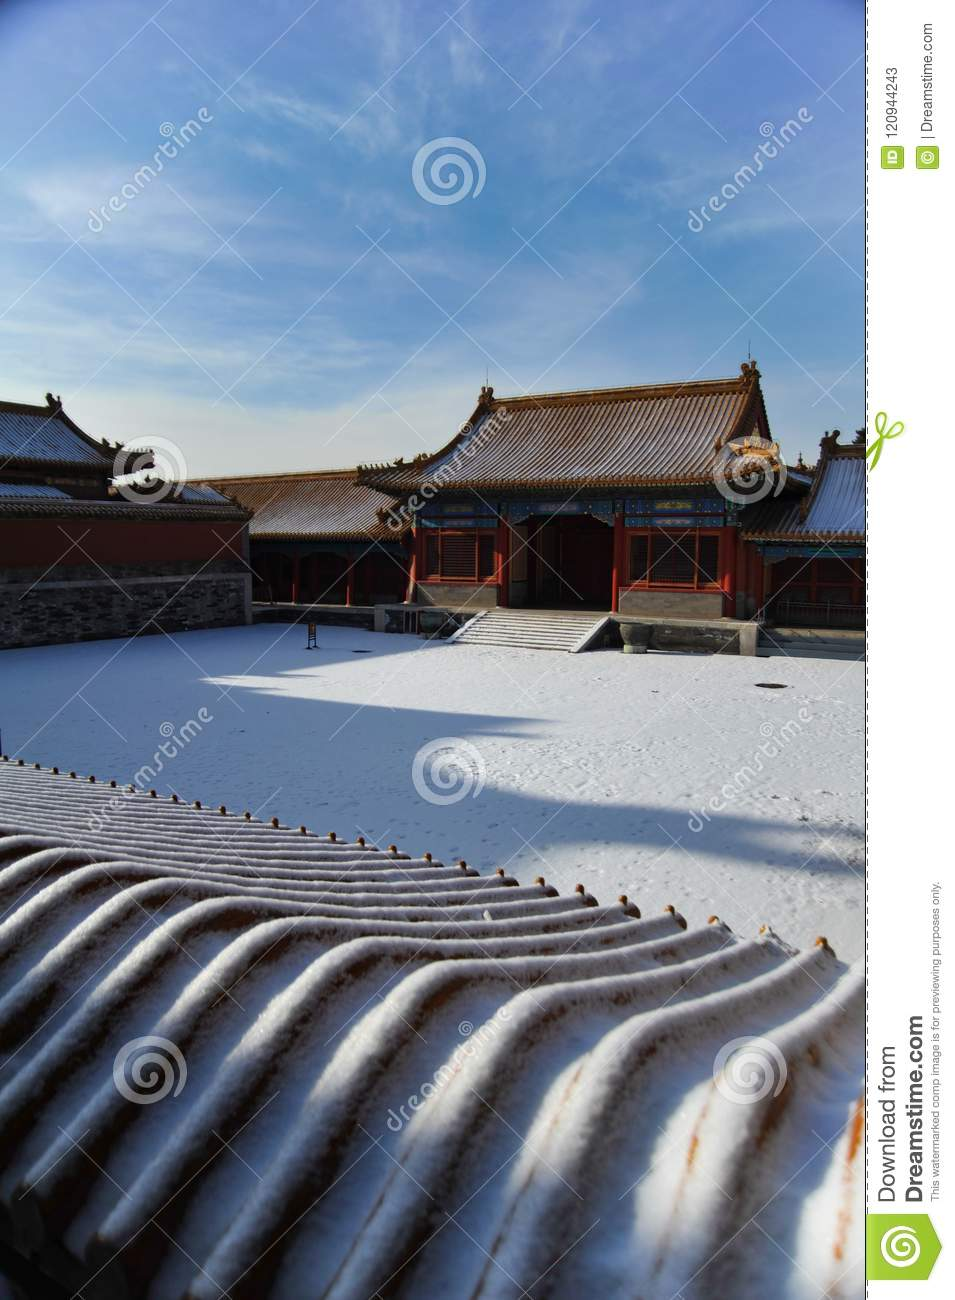 The snow scenery of the the Imperial Palace(The Forbidden City ) in Beijing,China